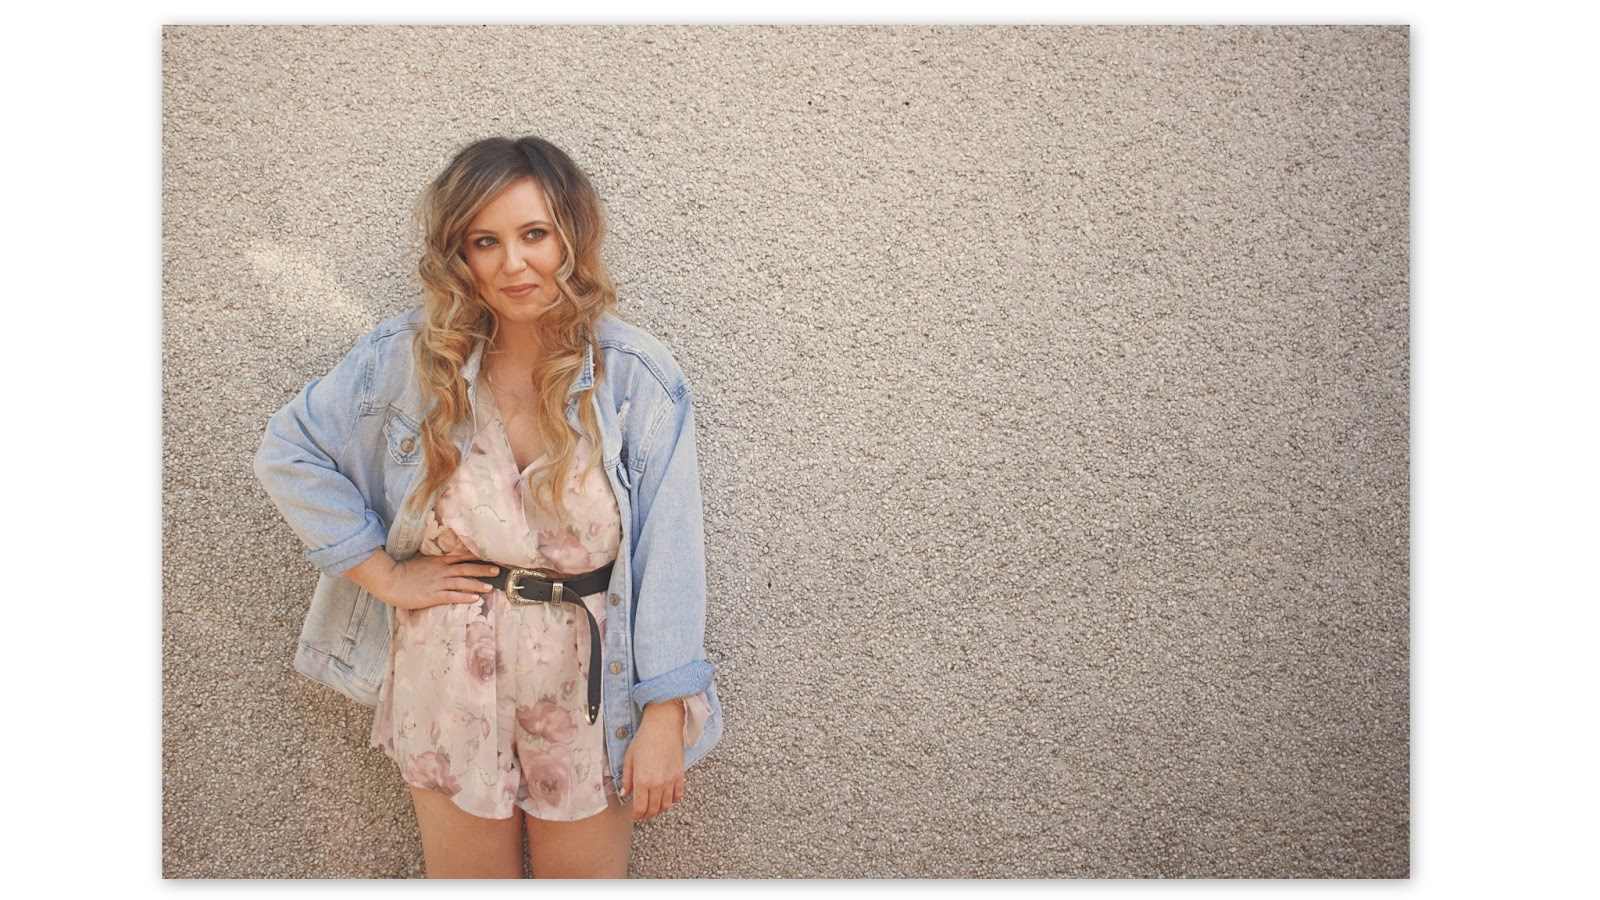 tobi floral playsuit with oversized denim jacket outfit photo, style, fashion blogger